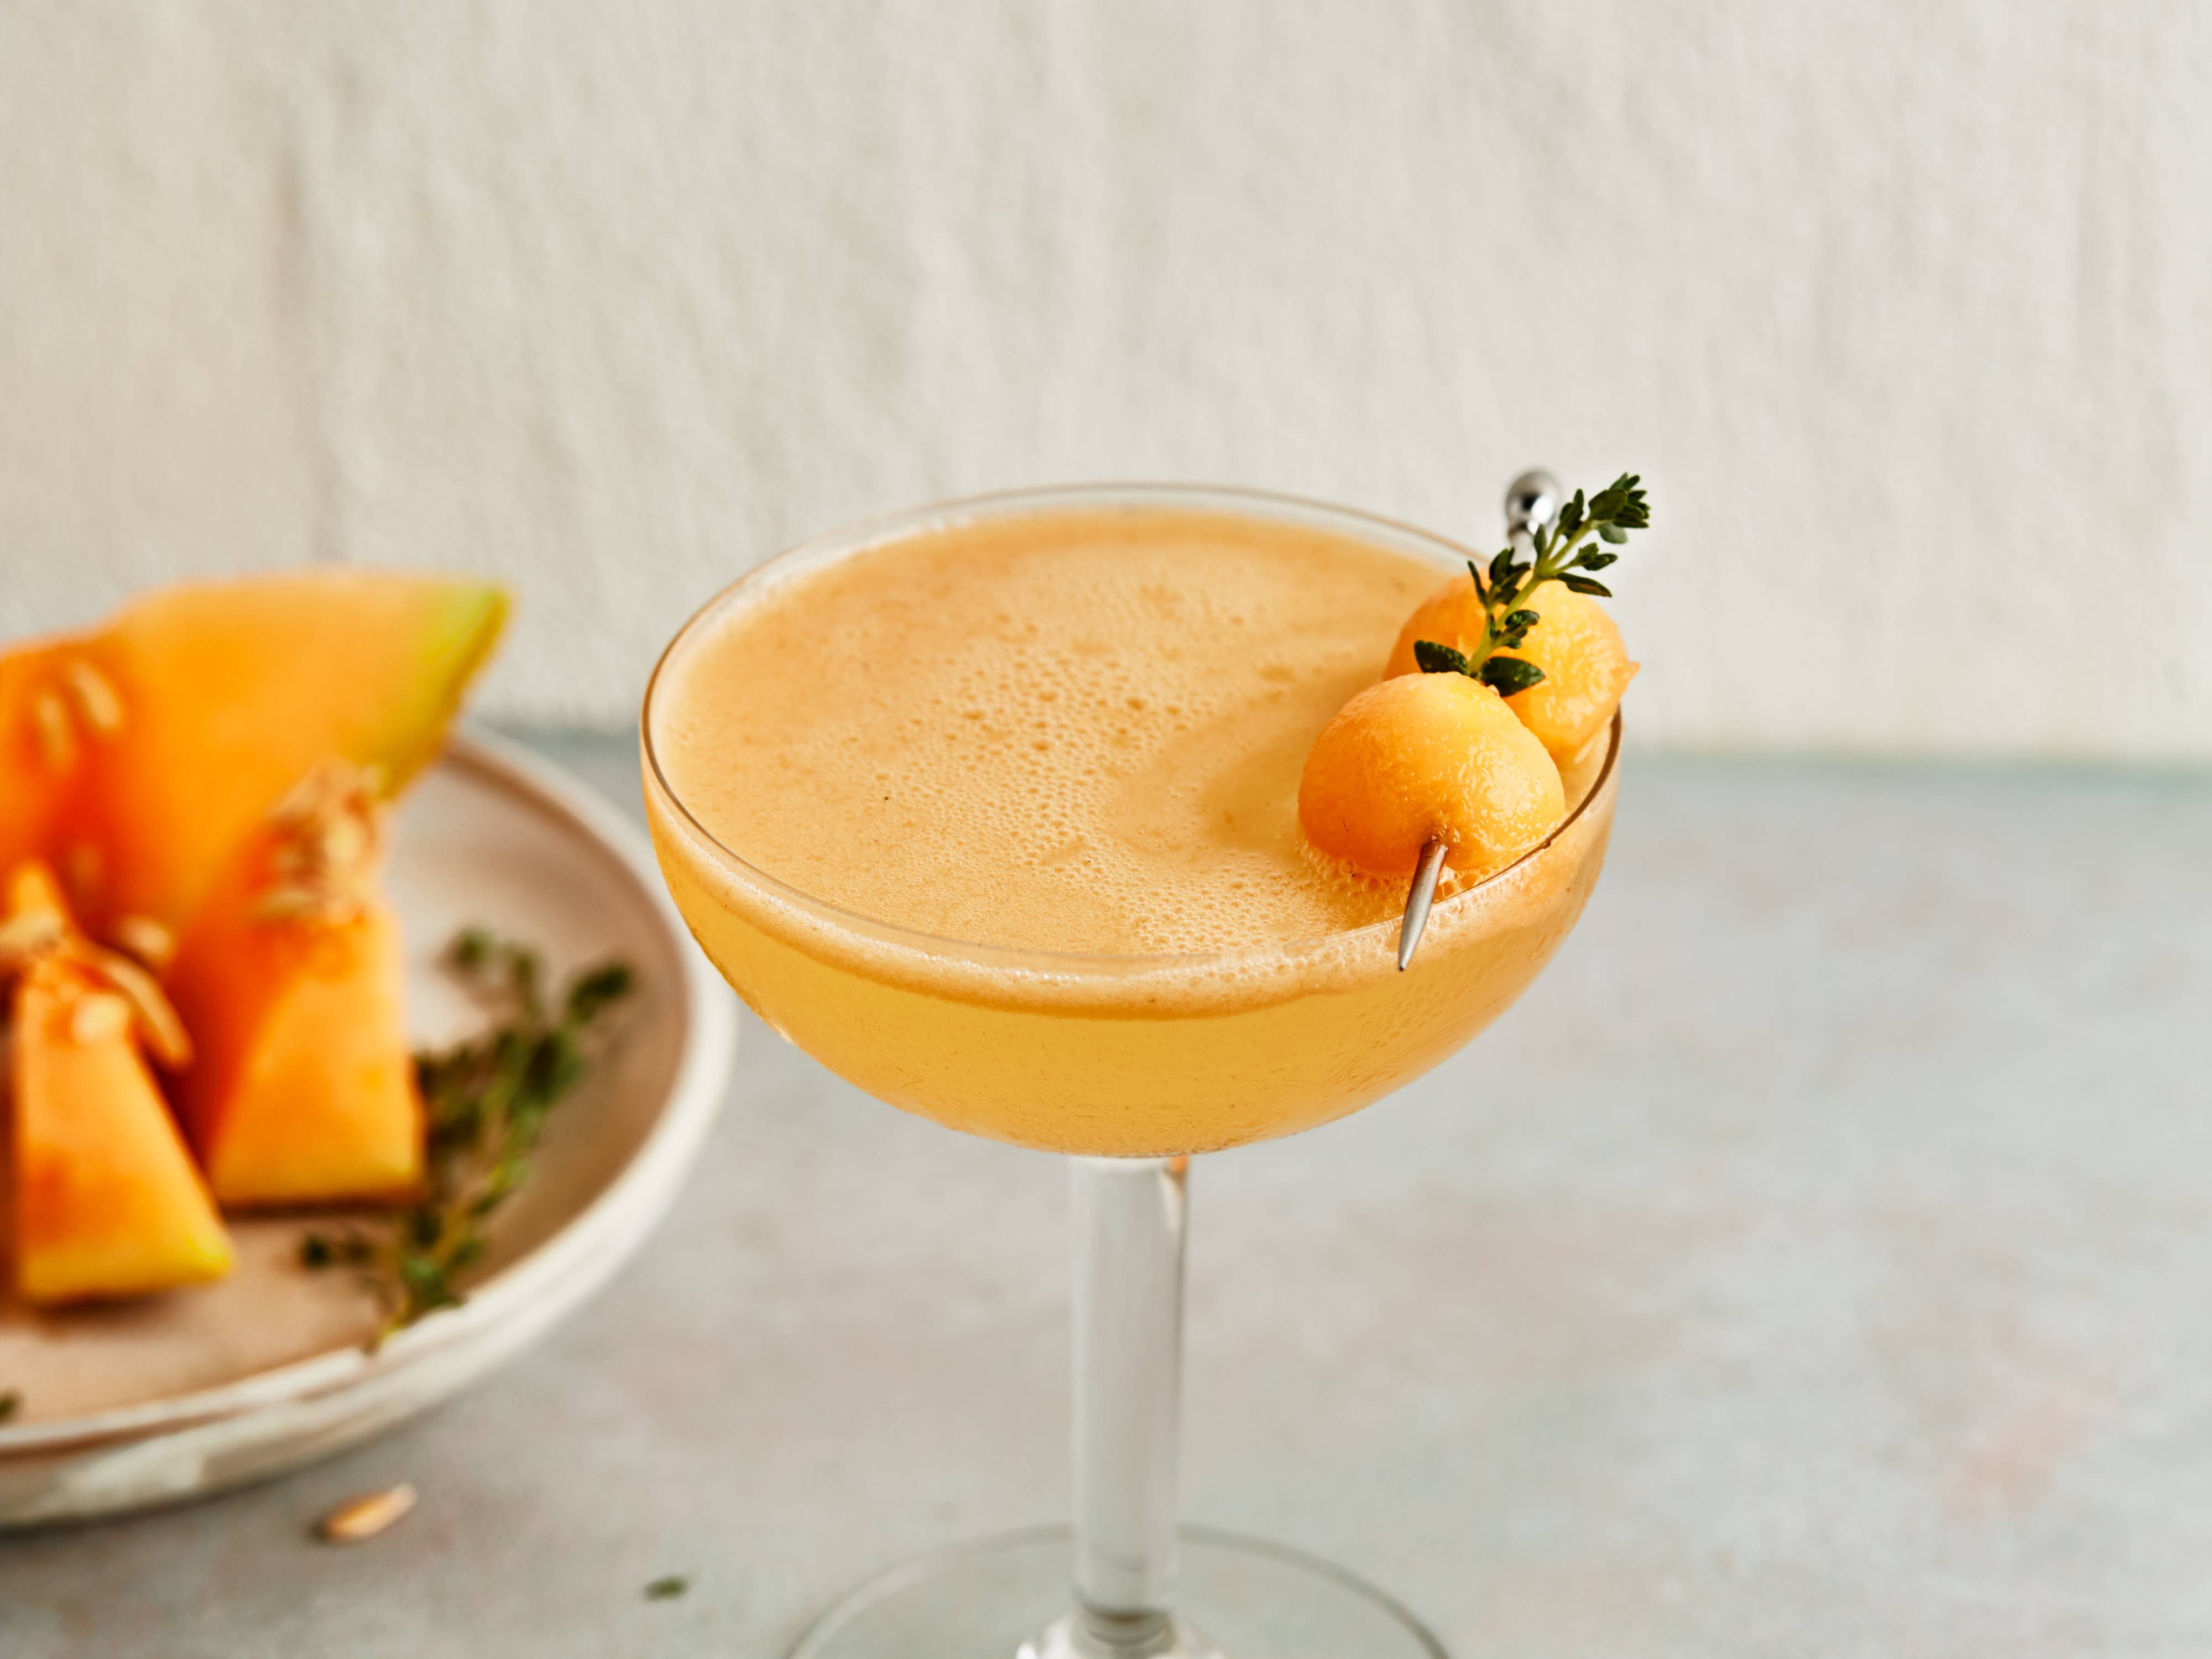 10 Best Cantaloupe Drink Alcohol Recipes Yummly Thin shreds of cantaloupe are combined with water and sweetened to taste. cantaloupe coastal breeze cocktail